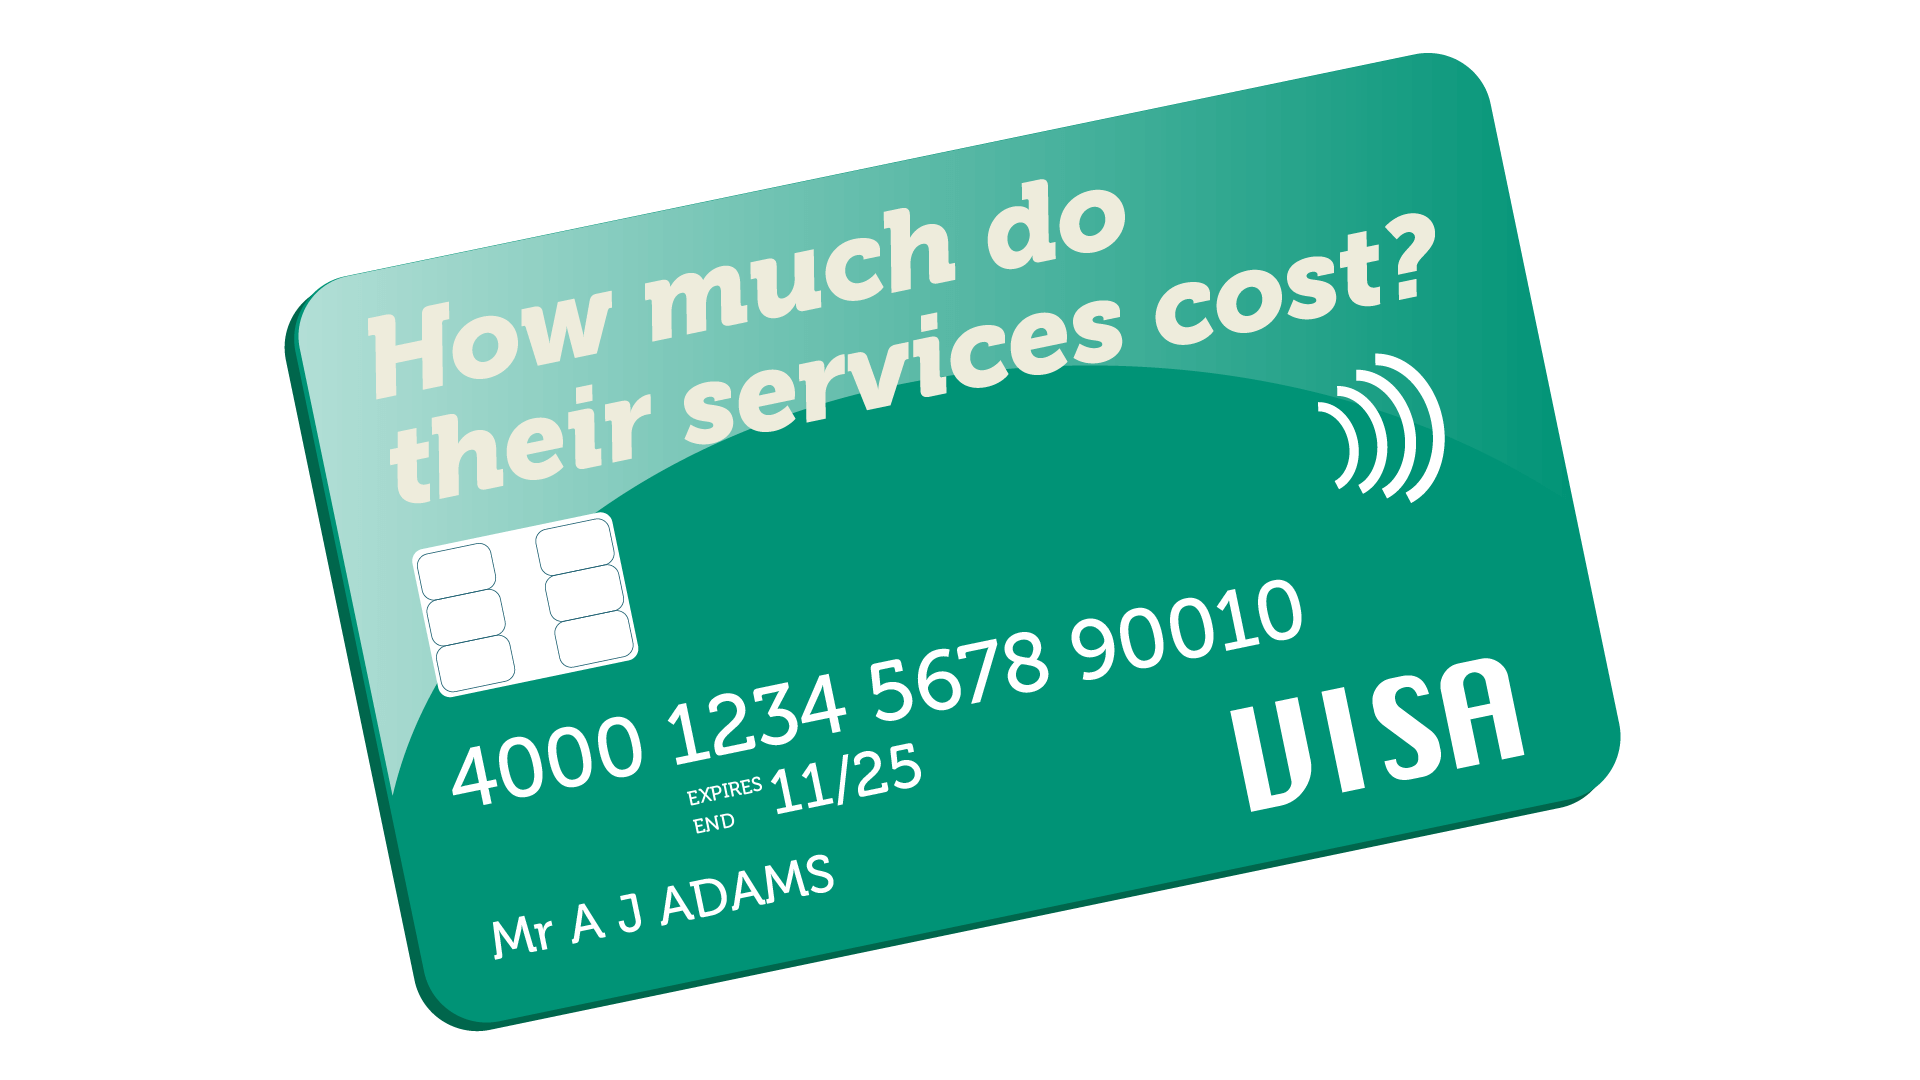 marketing consultant - how much do they cost? Image of a bankcard